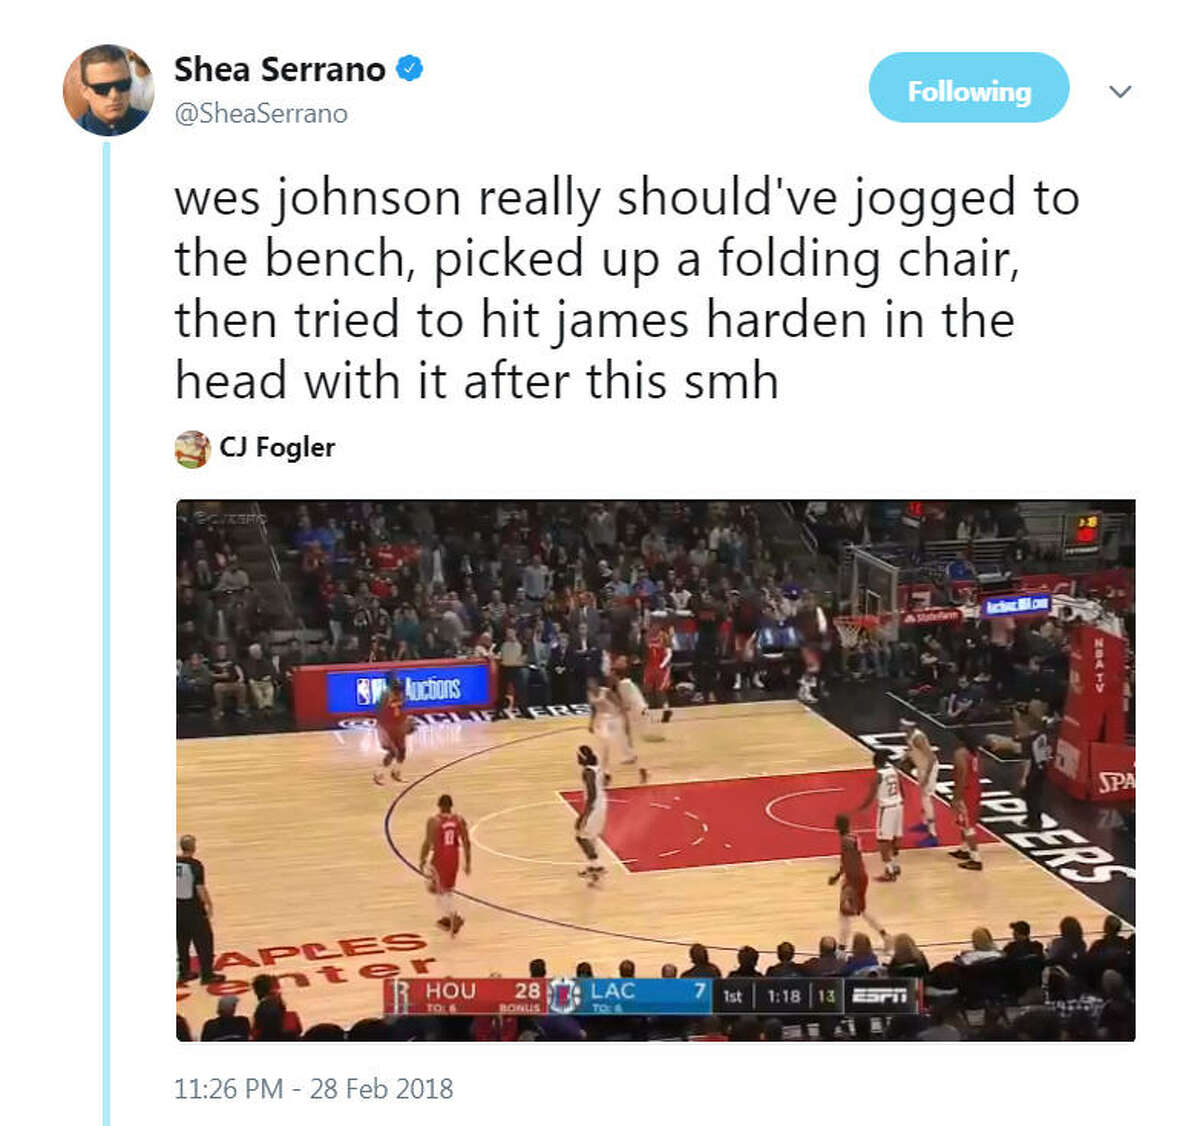 Rockets star James Harden went viral on Feb. 28, 2018 after pulling a crossover move that caused Clippers' player Wes Johnson to fall. Harden is accused of stealing Johnson's soul after staring him down and sinking a three-point shot after the move.Image source: Twitter